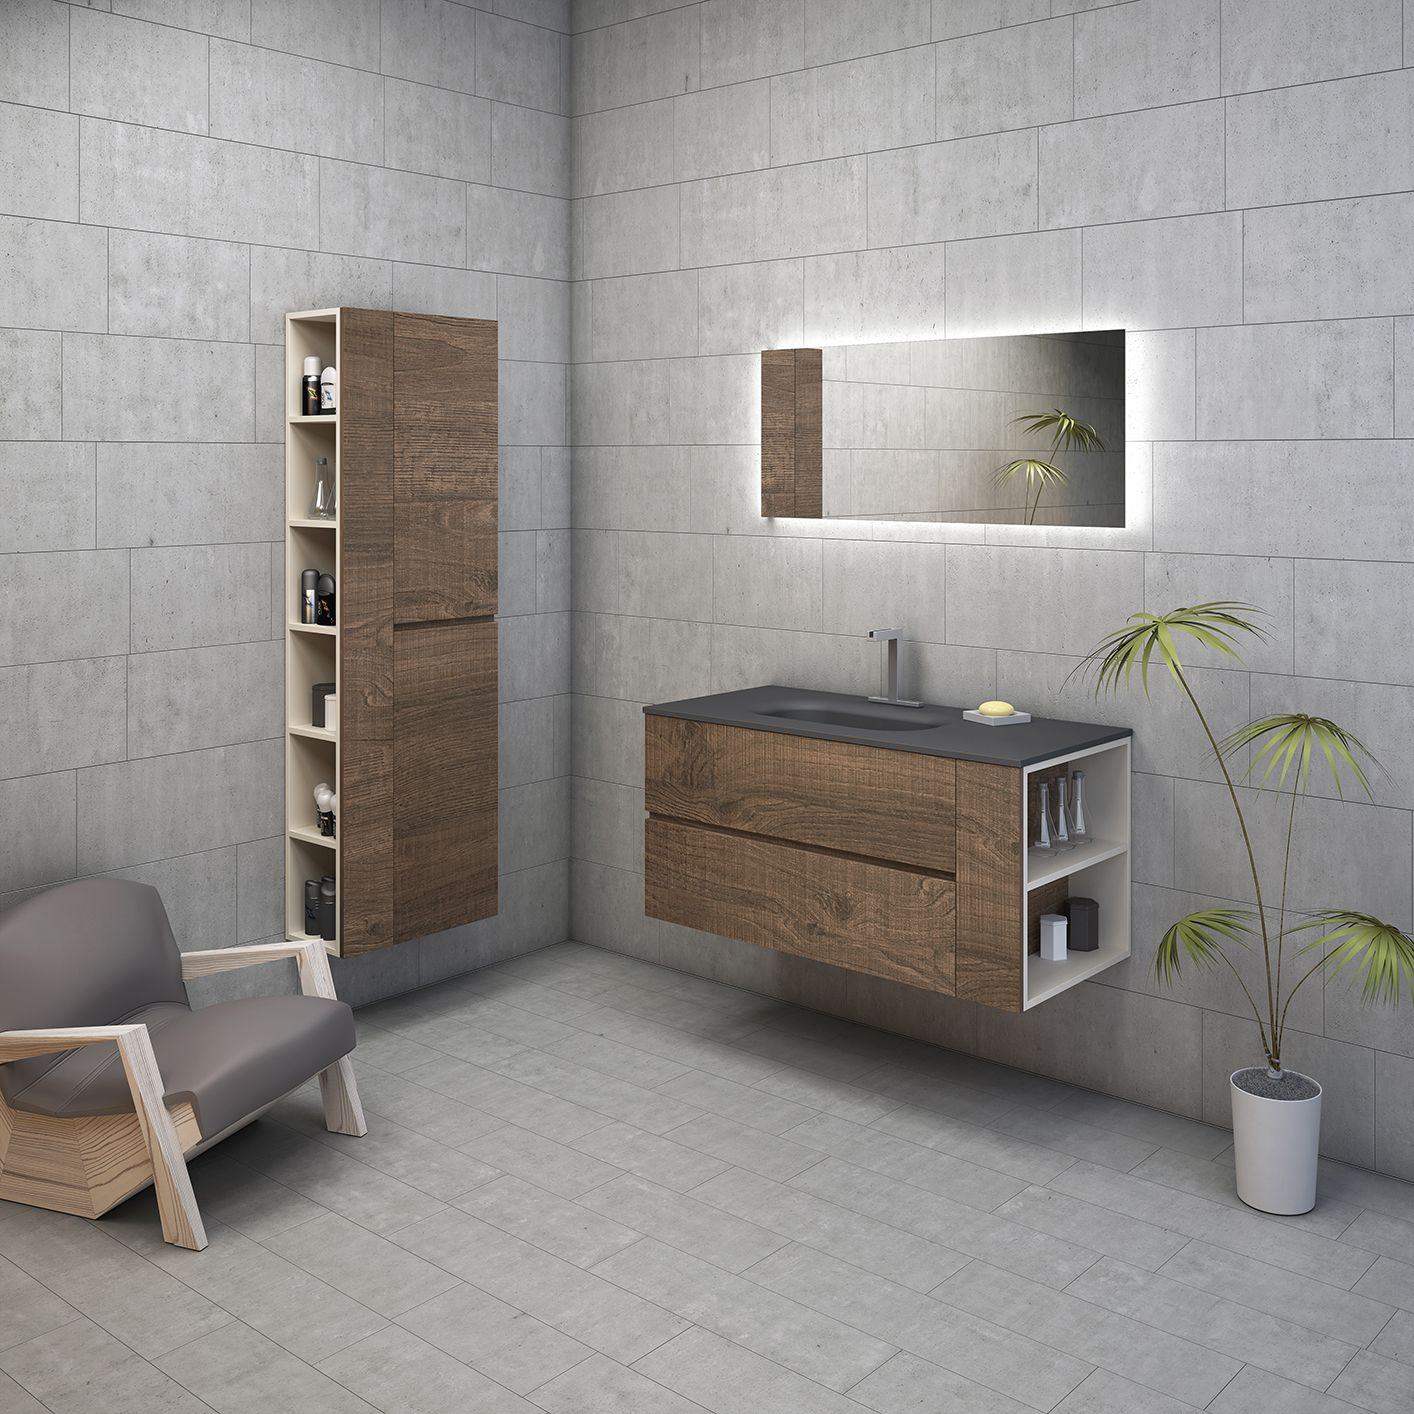 Bathroom furniture_Sherwood surface by Cleaf Small